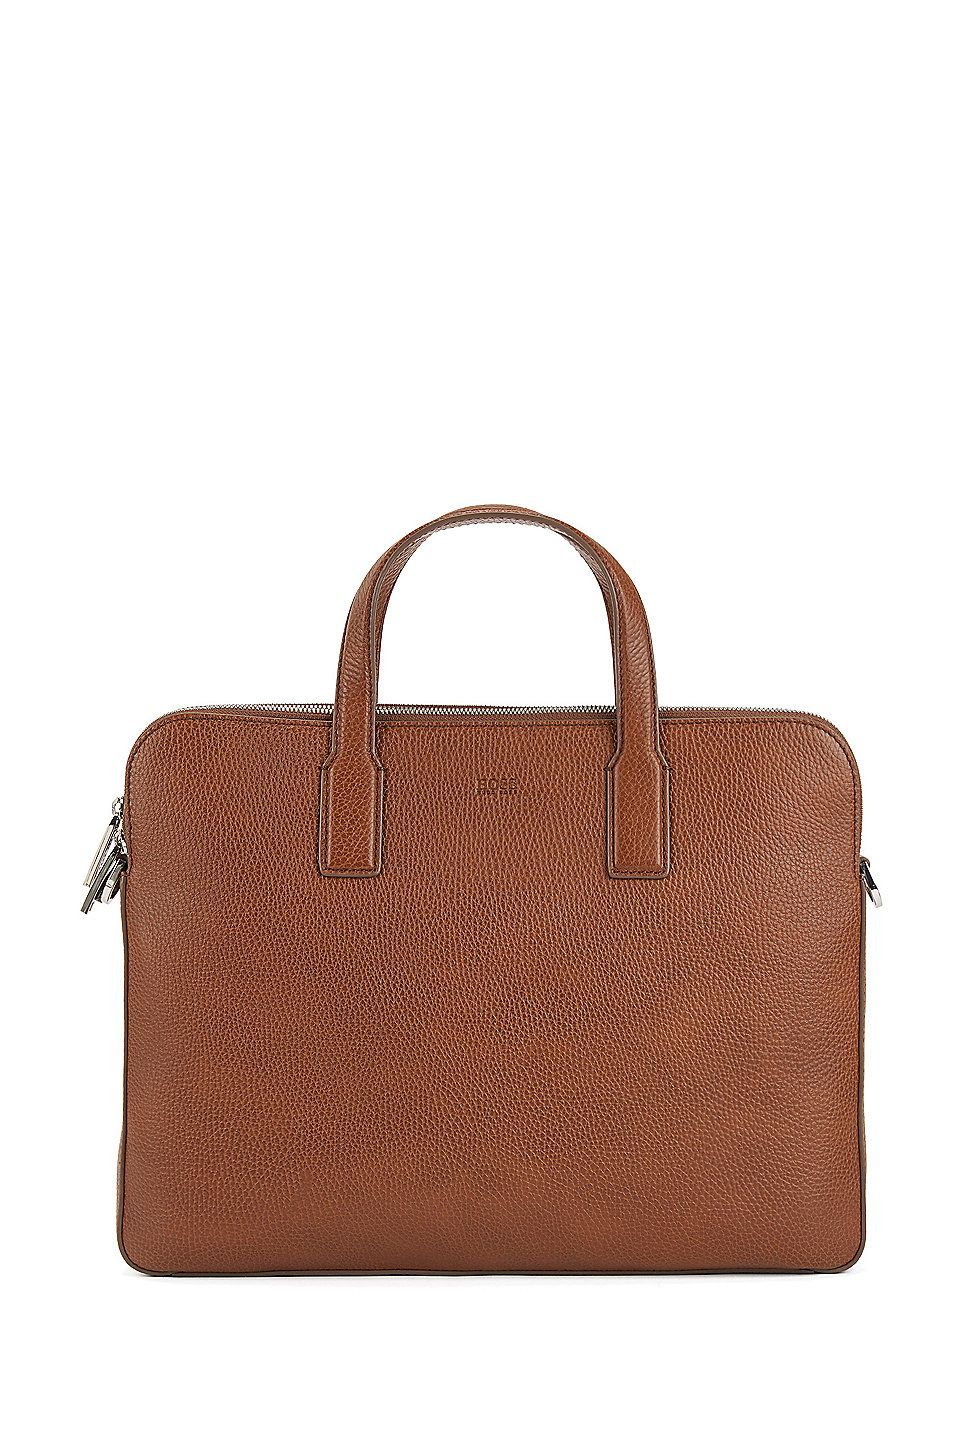 0b7f7f31a3 HUGO BOSS Double document case in grainy Italian leather - Light Brown  Business Bags from BOSS for Men in the official HUGO BOSS Online Store free  shipping